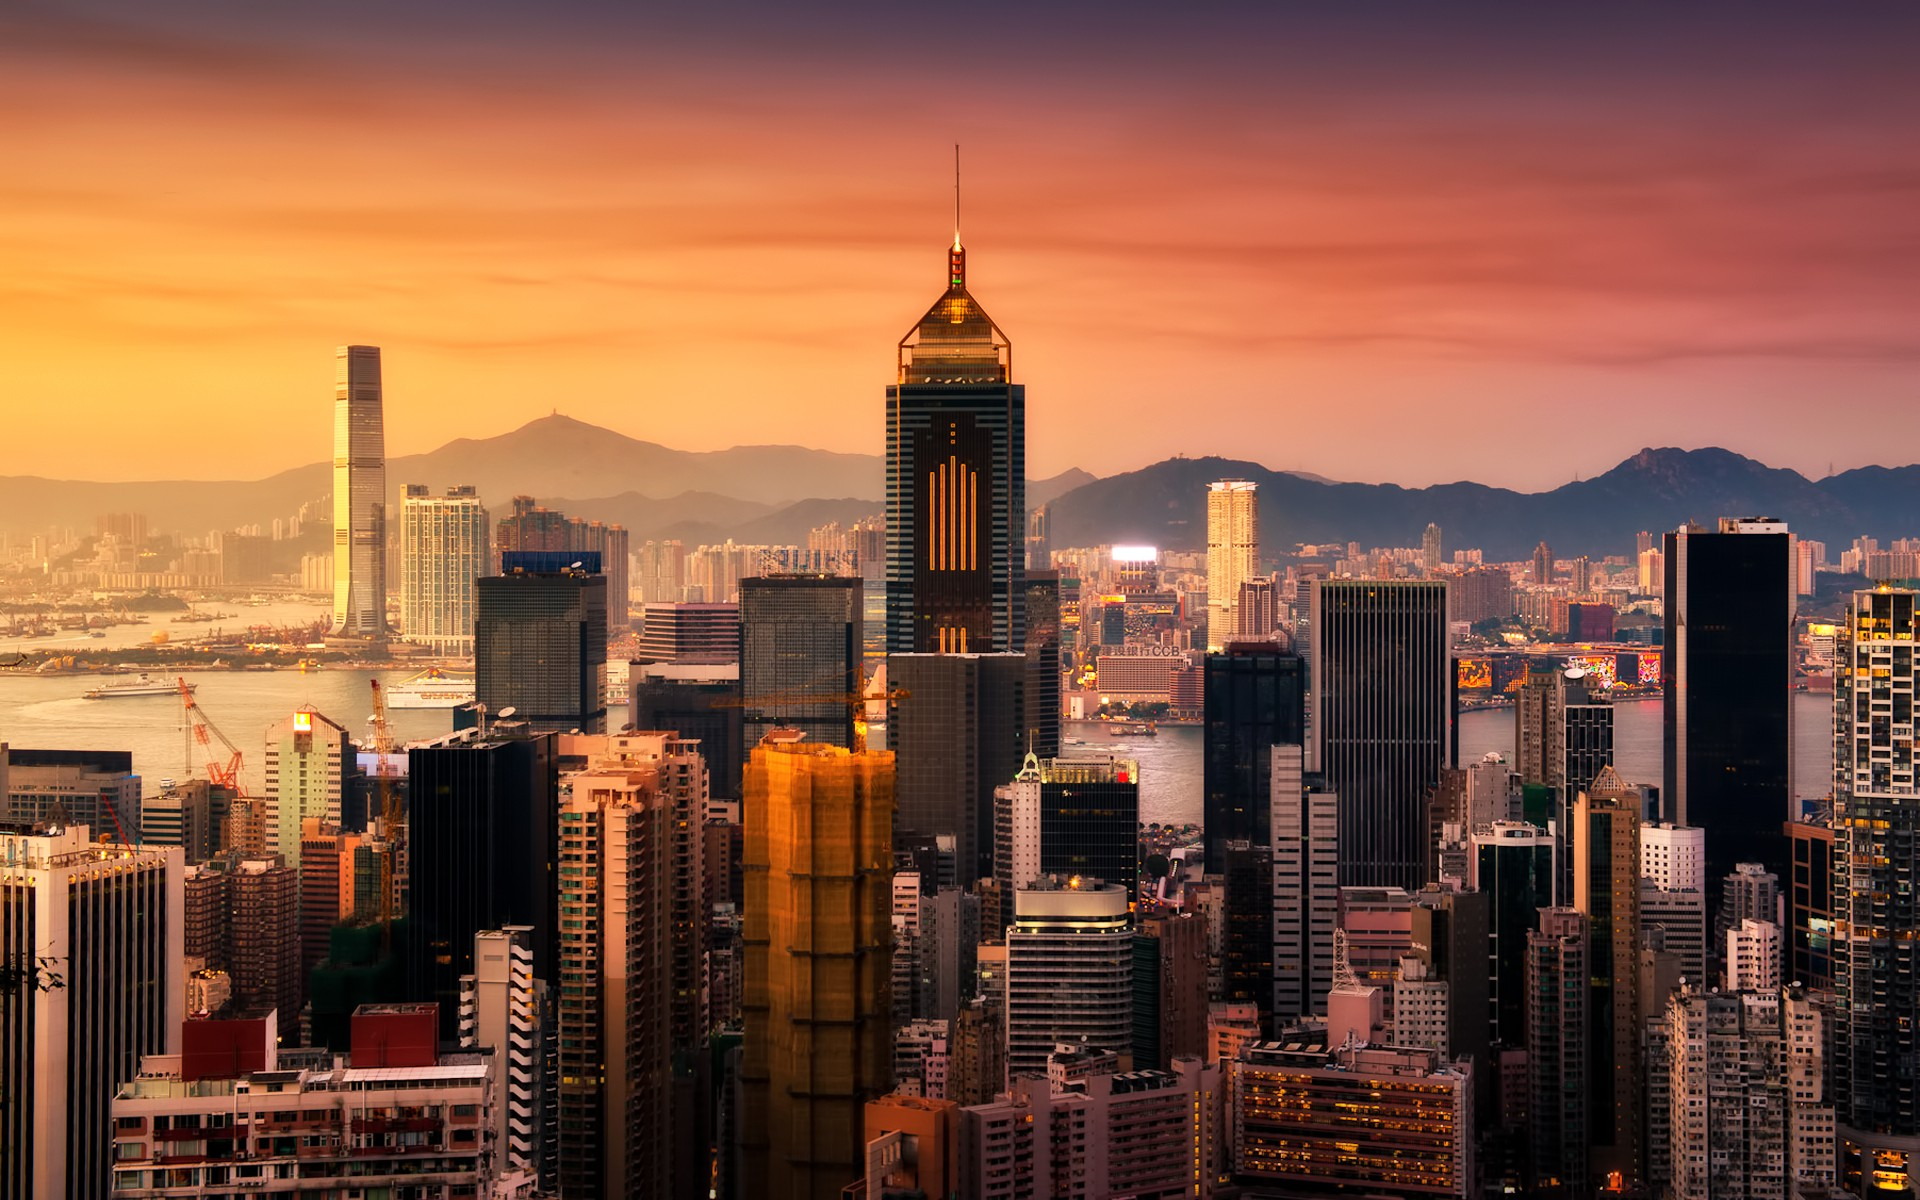 daily wallpaper: hong kong at sunrise | i like to waste my time